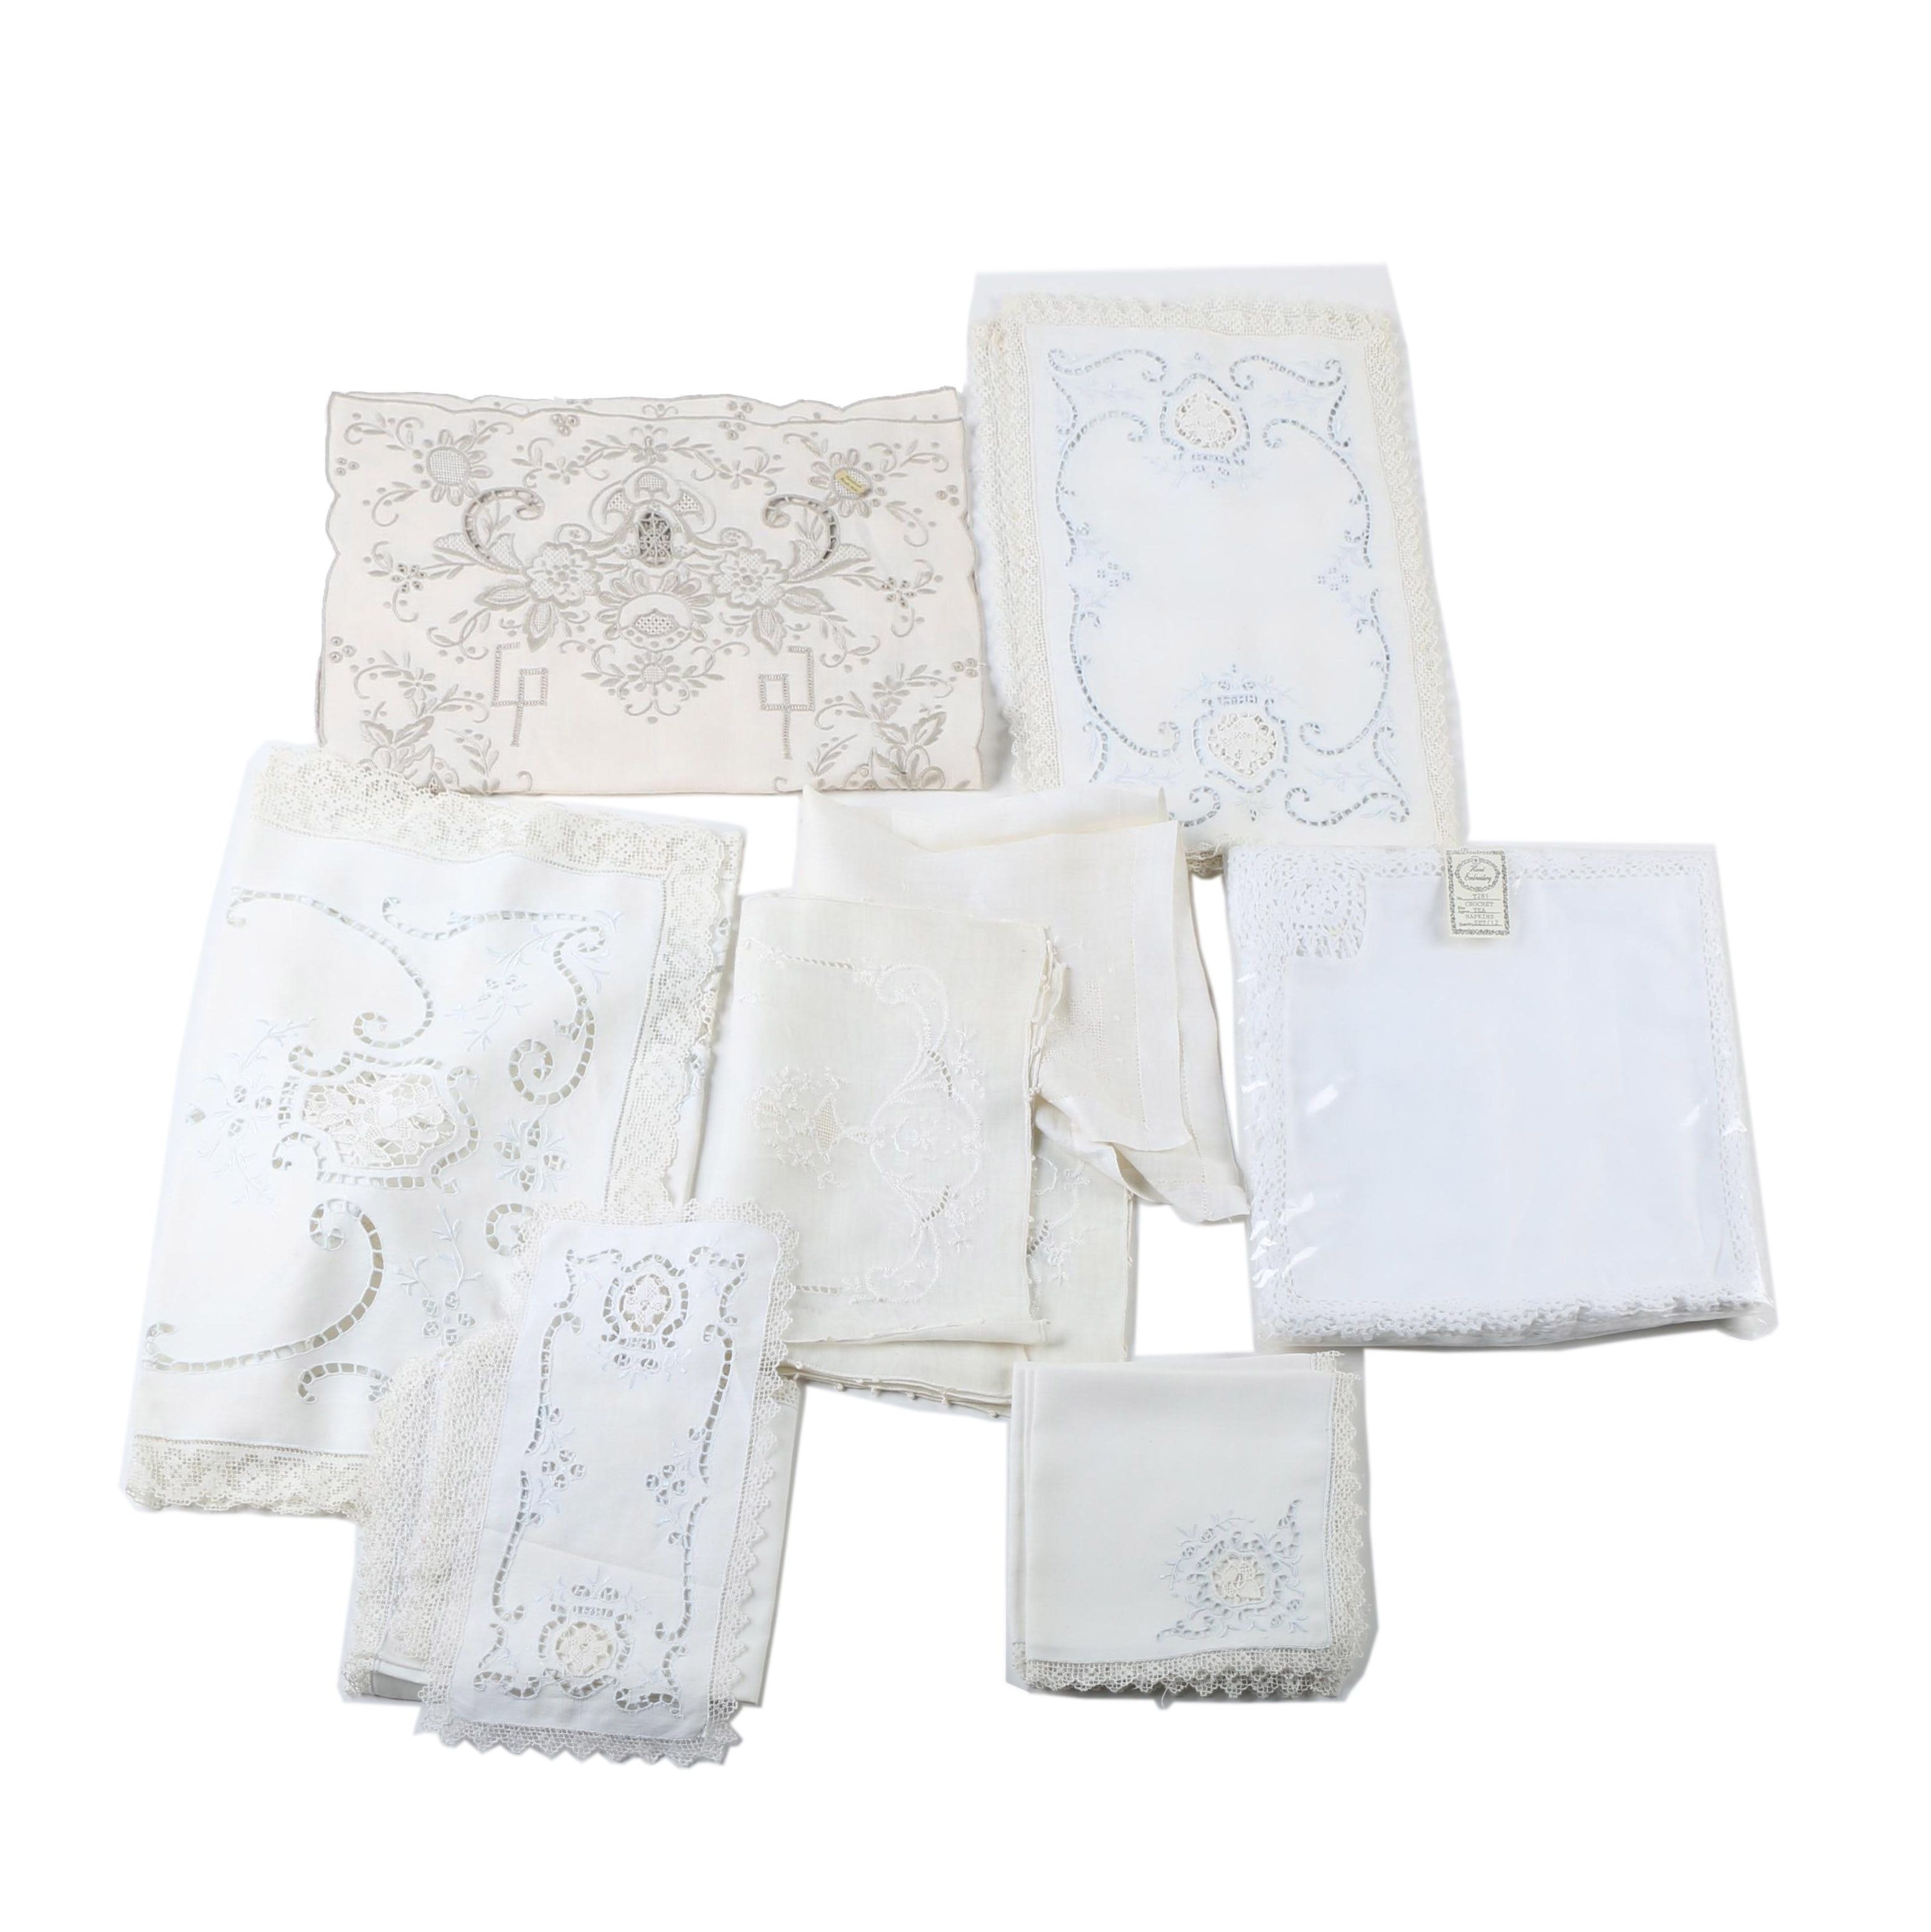 Vintage Embroidered and Lace Linens and Napkins